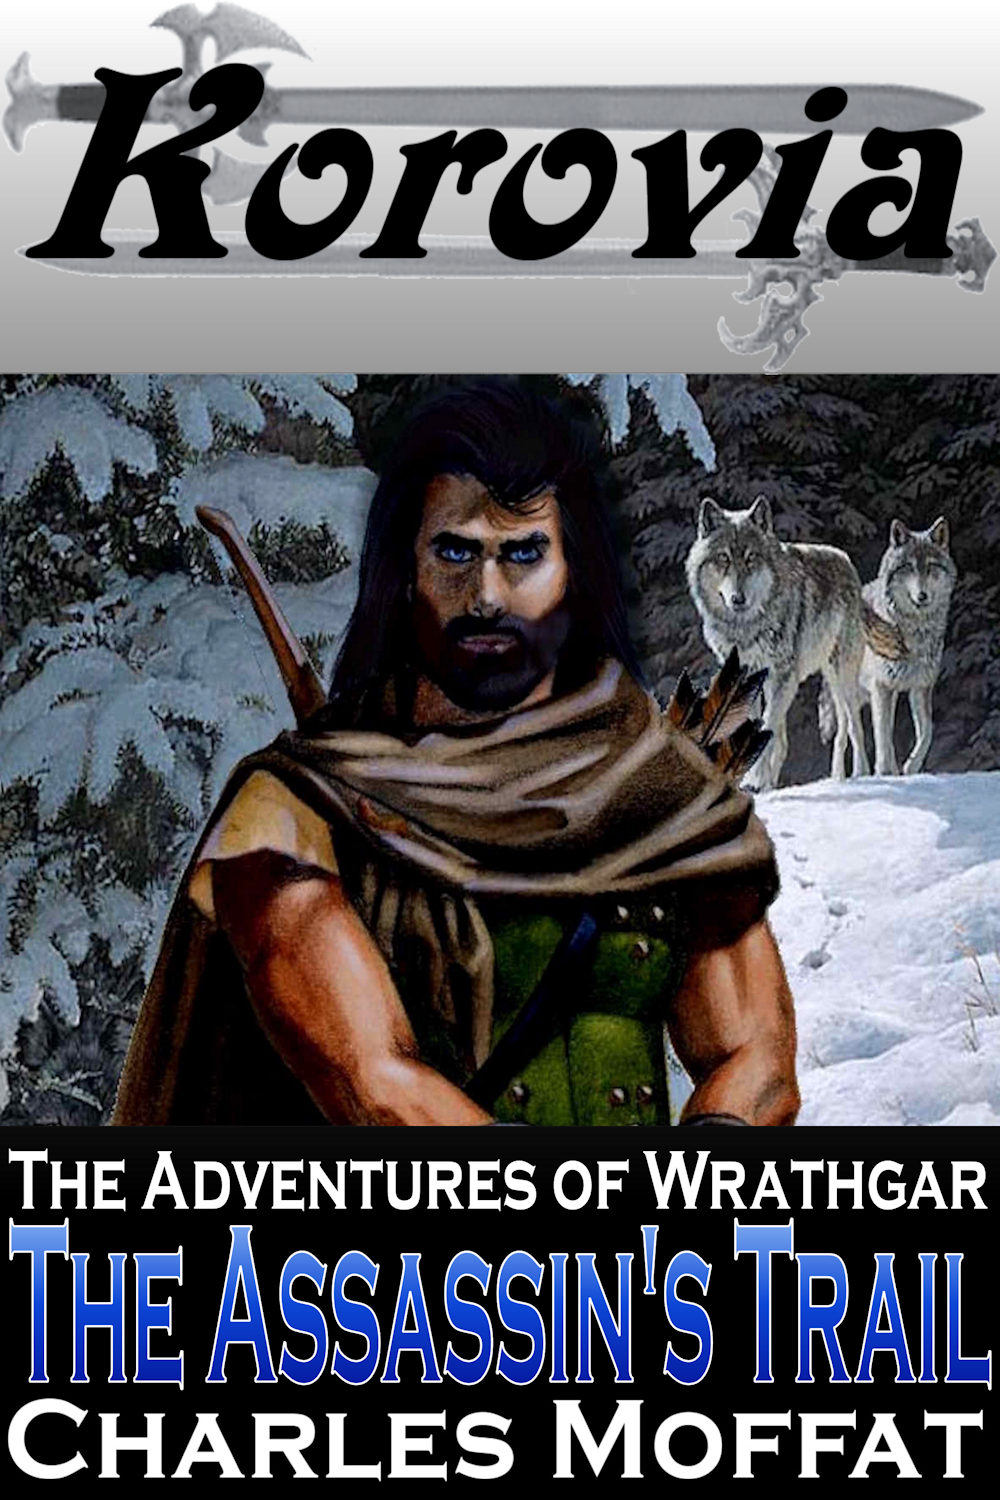 The Assassin's Trail - Book 1 of the Adventures of Wrathgar